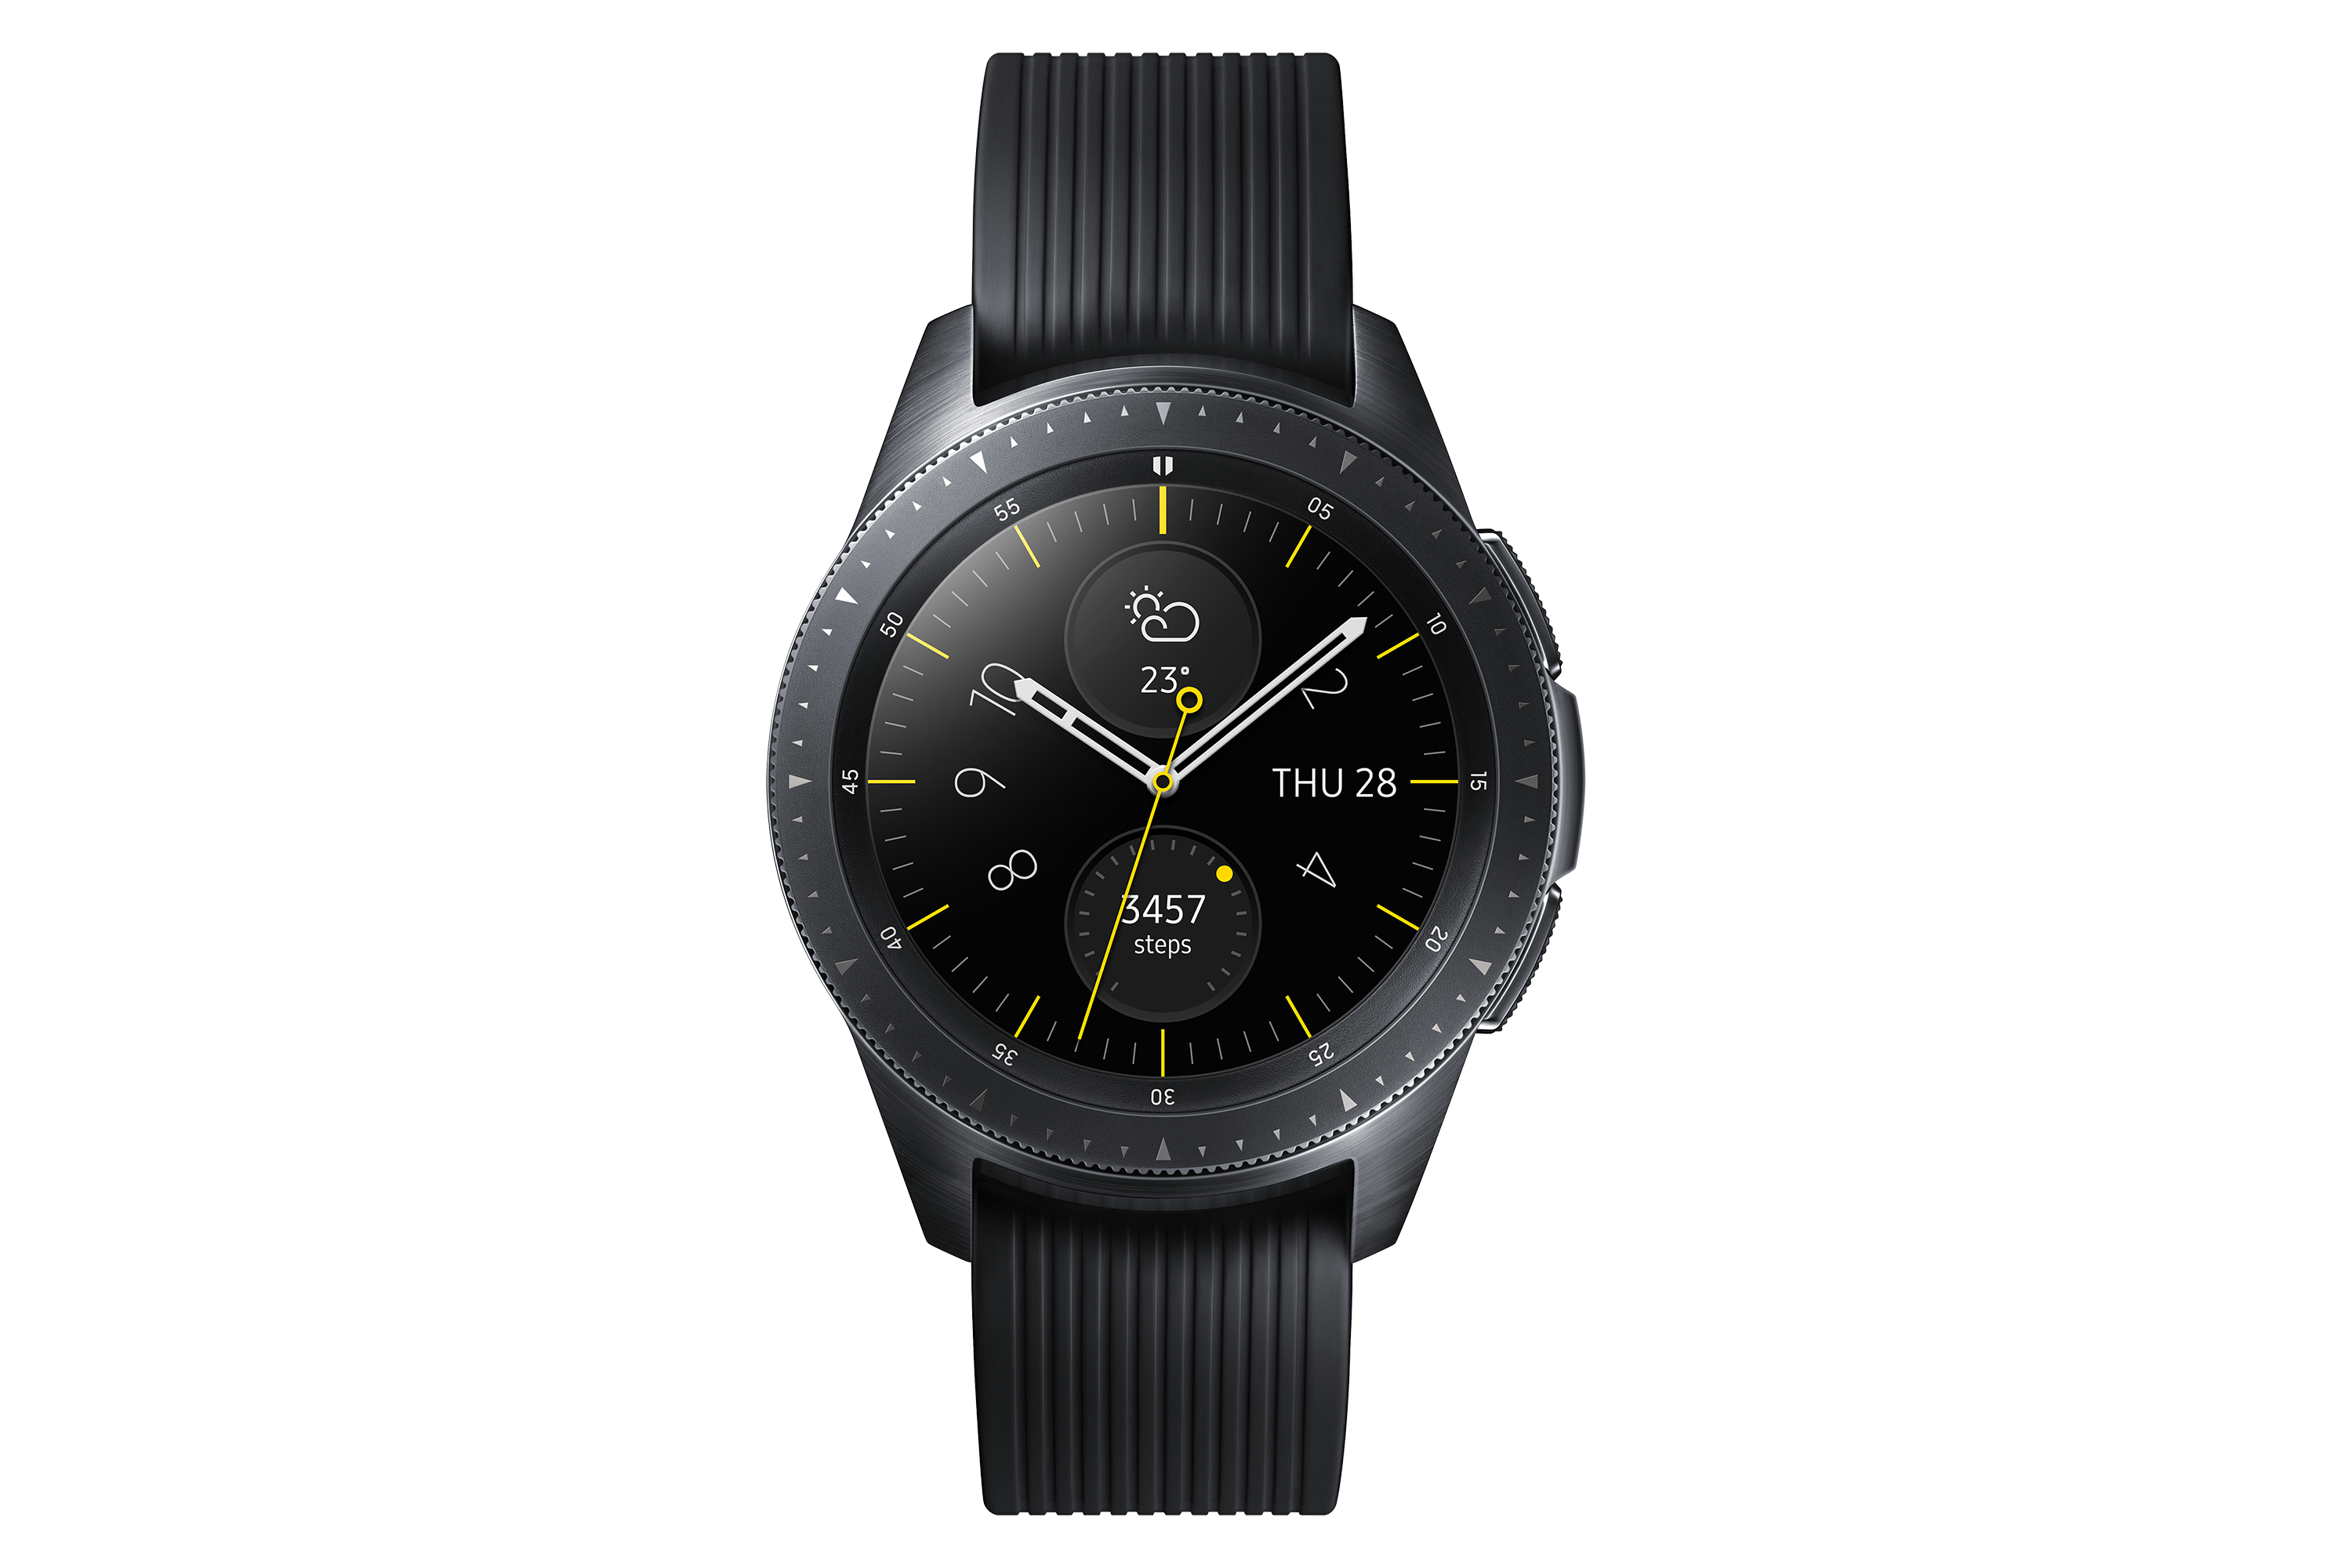 ساعة ‎ Galaxy Watch ‎(42mm)